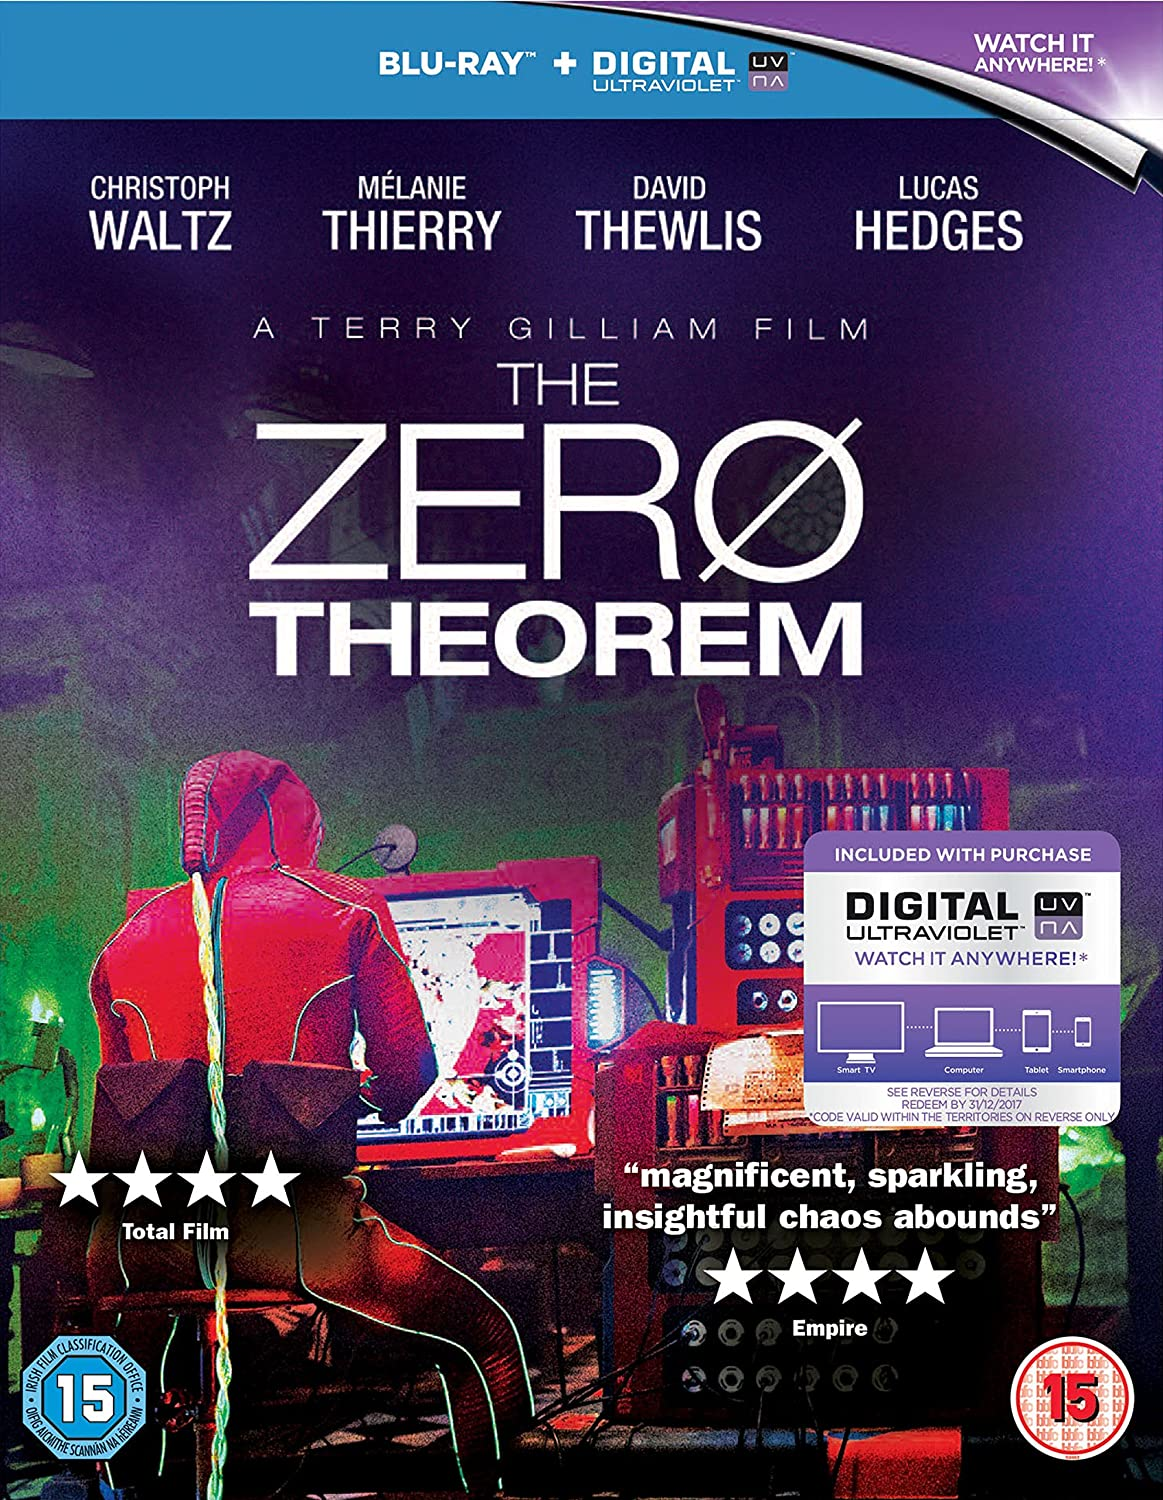 91ZHlYb5d4L. SL1500  The Zero Theorem (2014) Sci Fi (BluRay) NEW in Theaters * Christoph Waltz